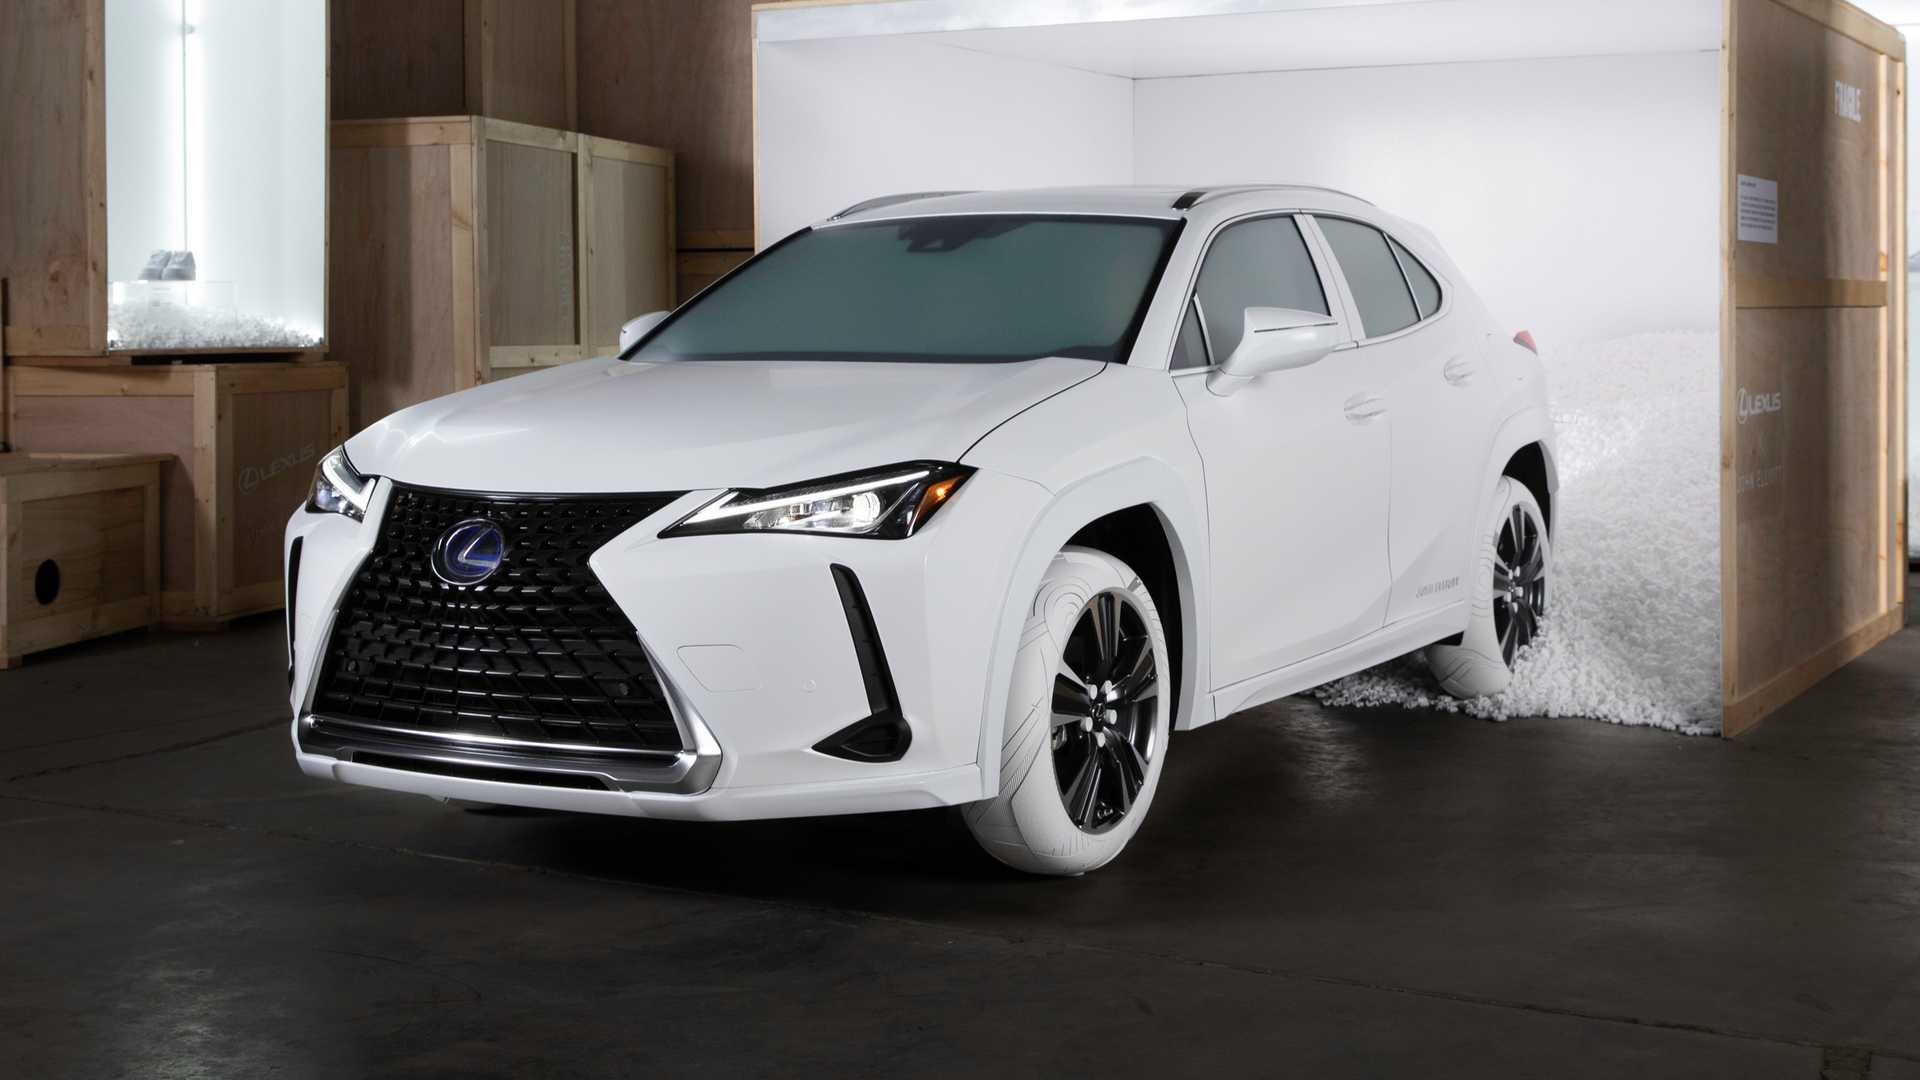 Japanese luxury car marque Lexus has come to the New-York Fashion Week with a UX SUV sporting an exclusive set of tires reminiscent of the famous John Elliott x Nike AF1 running shoes